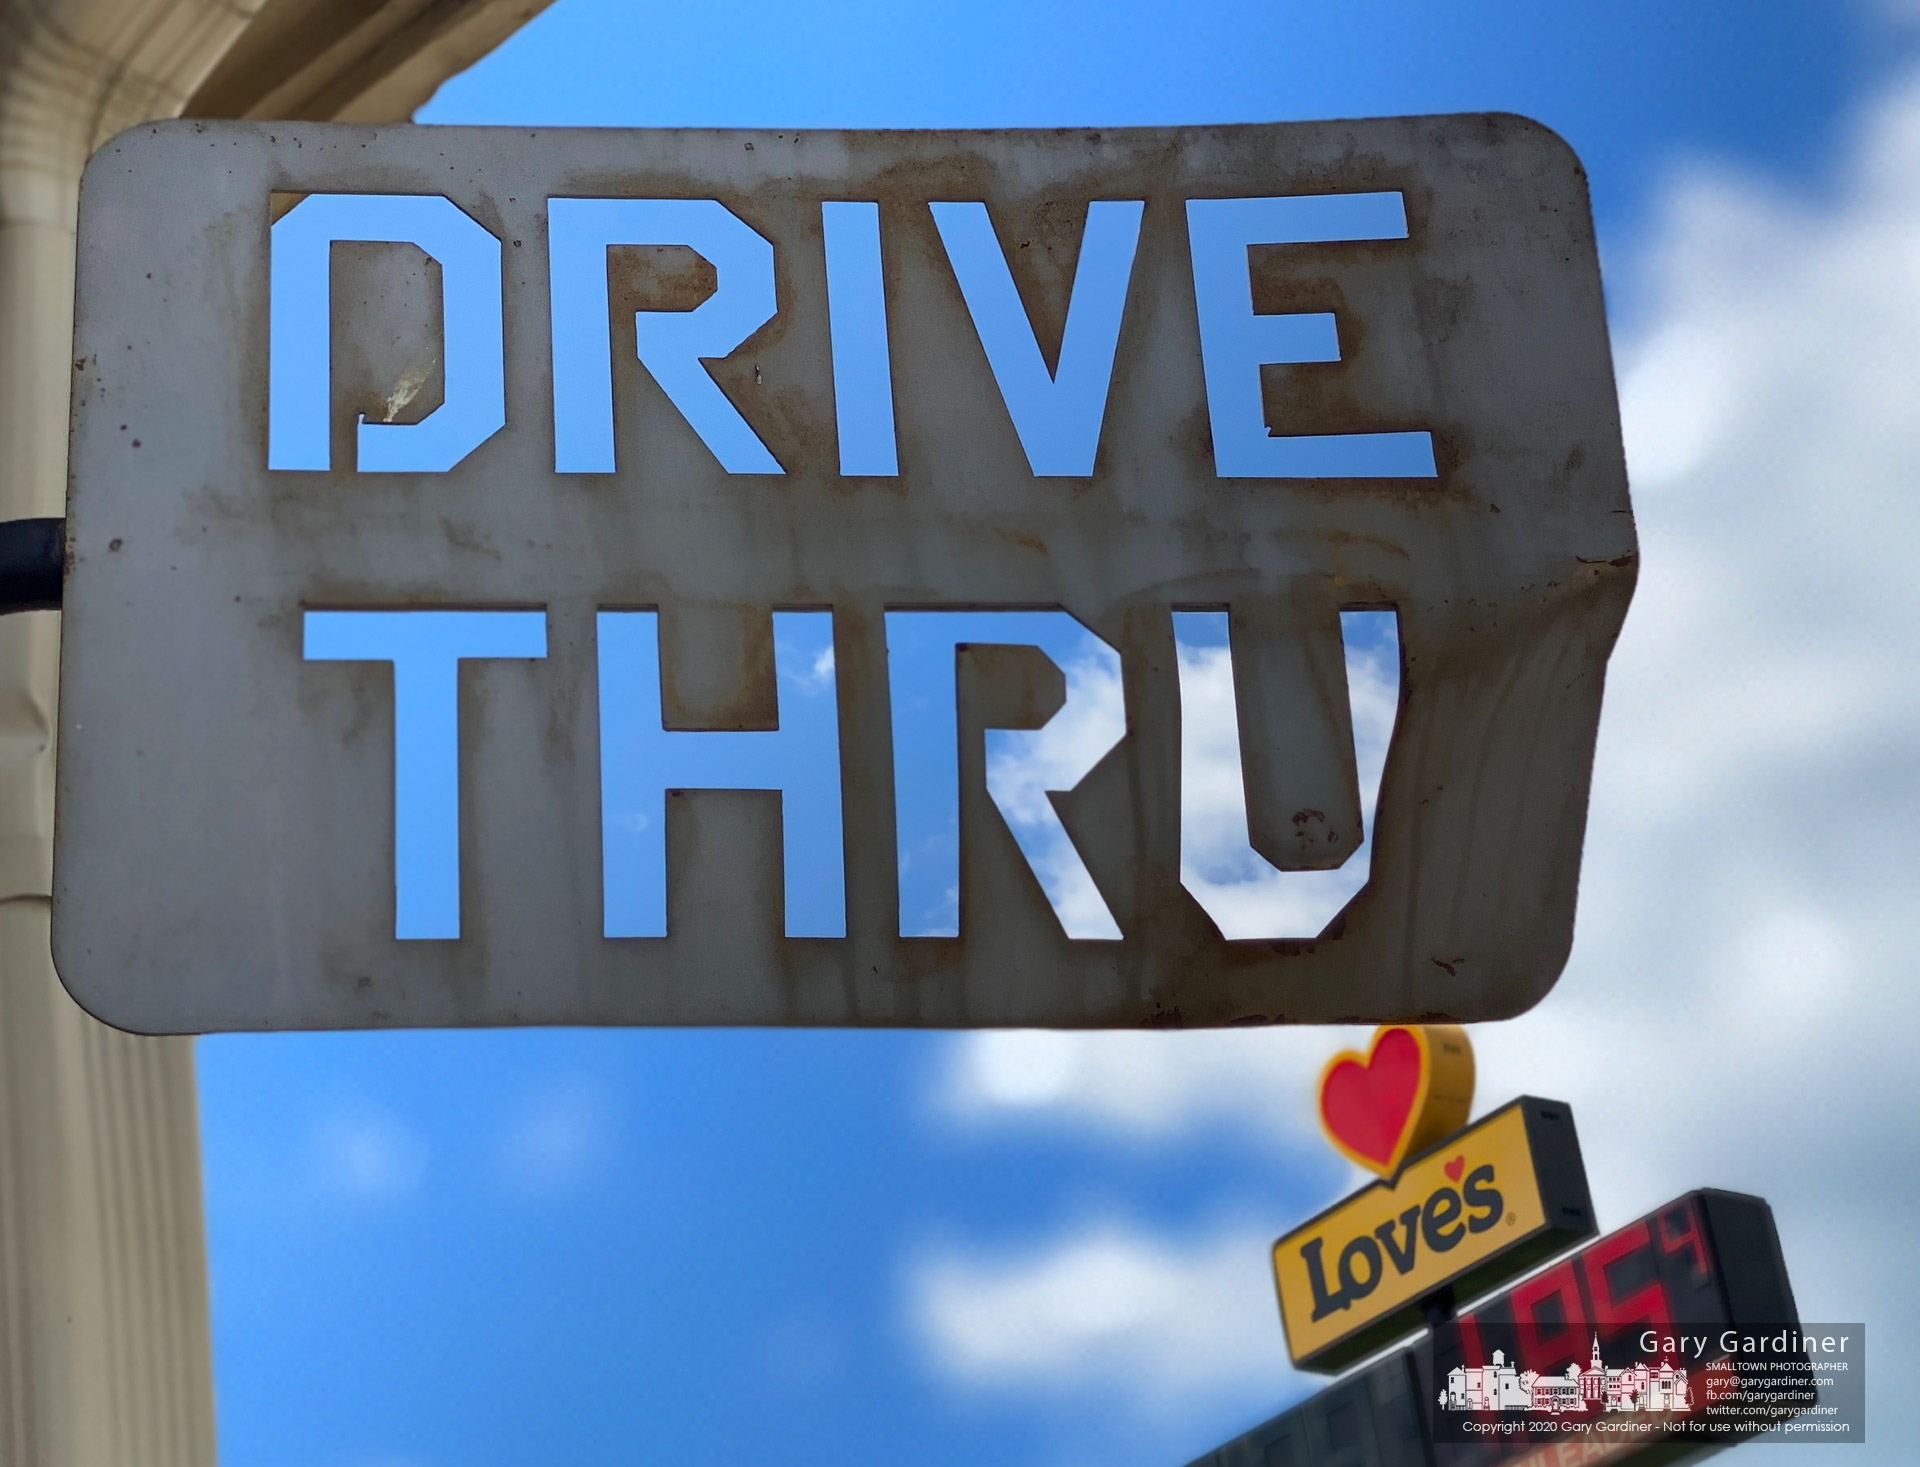 A metal routed letter sign marks a restaurant drive-thru path adjacent to a Love's gas station along the interstate in Kentucky. My Final Photo for July 11, 2020.